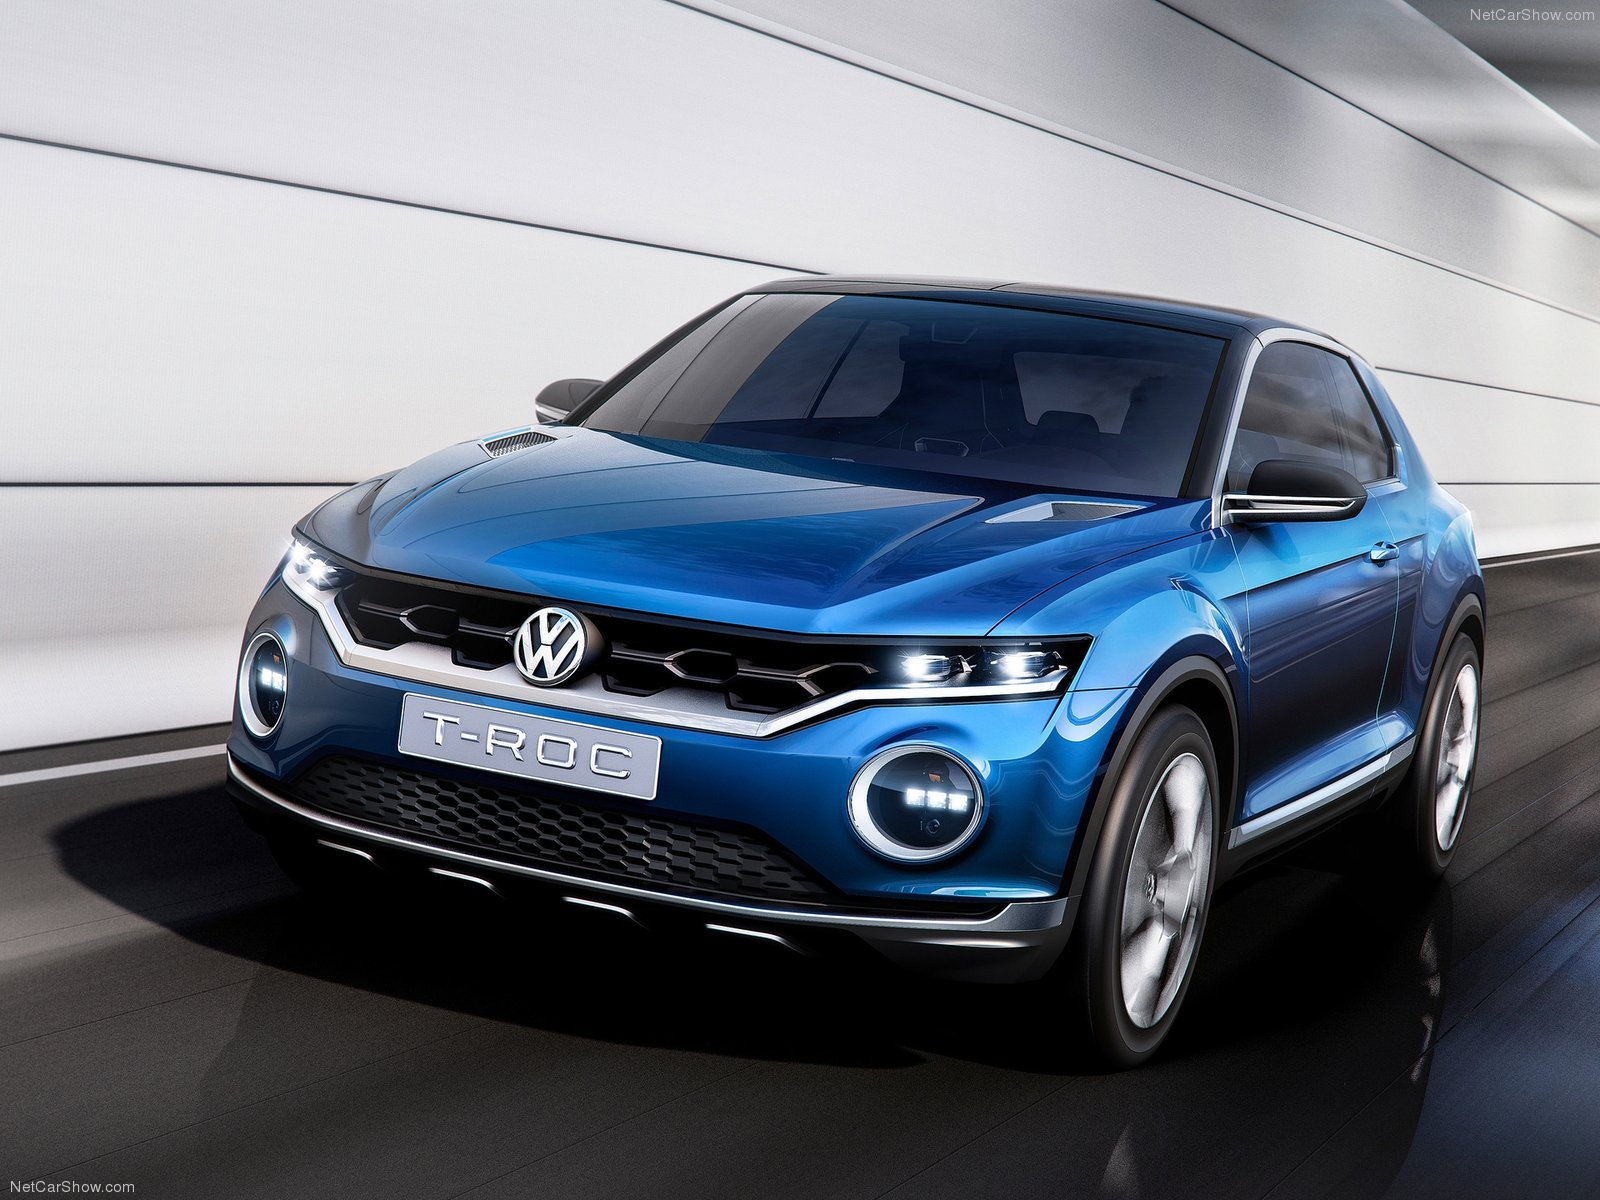 Volkswagen T-ROC concept photo 112157